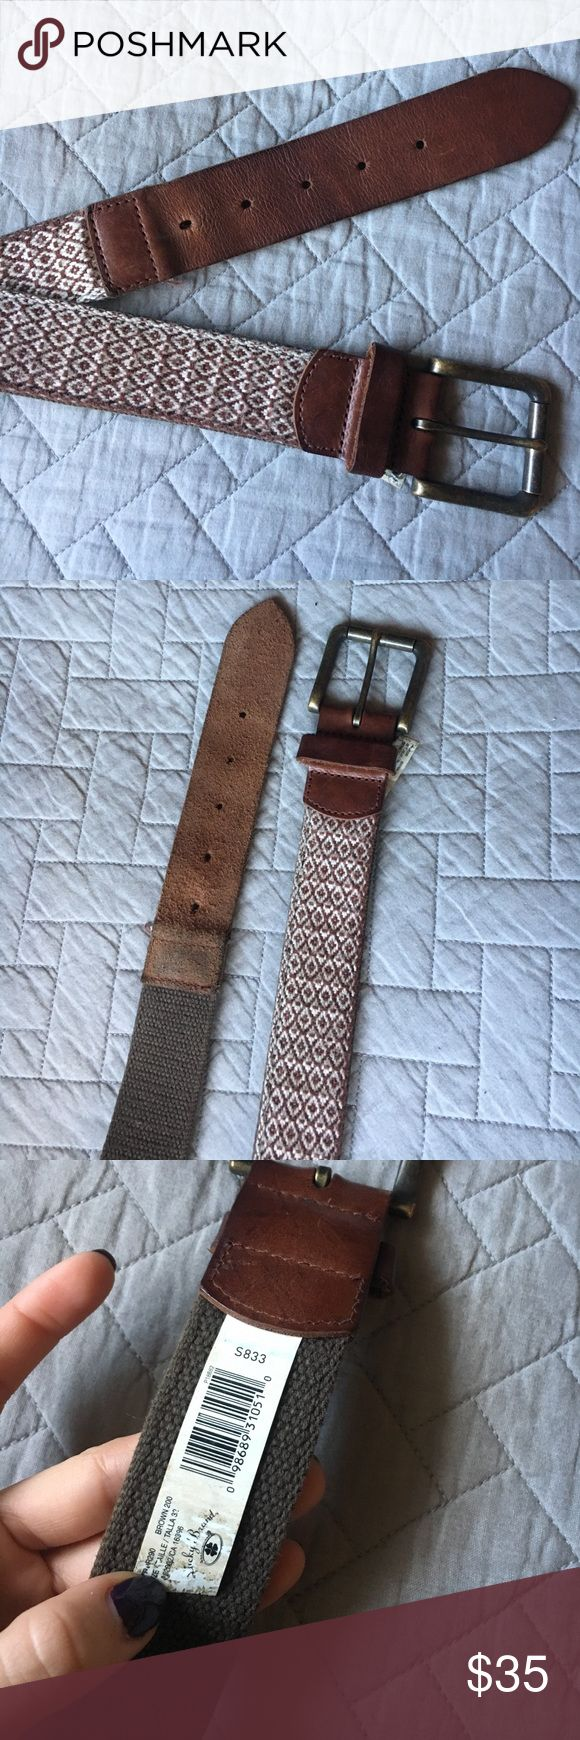 Lucky Brand Belt Brown Lucky Brand belt. 38 inches long. 1.5 inches wide. Designed to be worn at hips. Small. Gently used. No major signs of wear. The fabric and leather is just a little worn in. Lucky Brand Accessories Belts